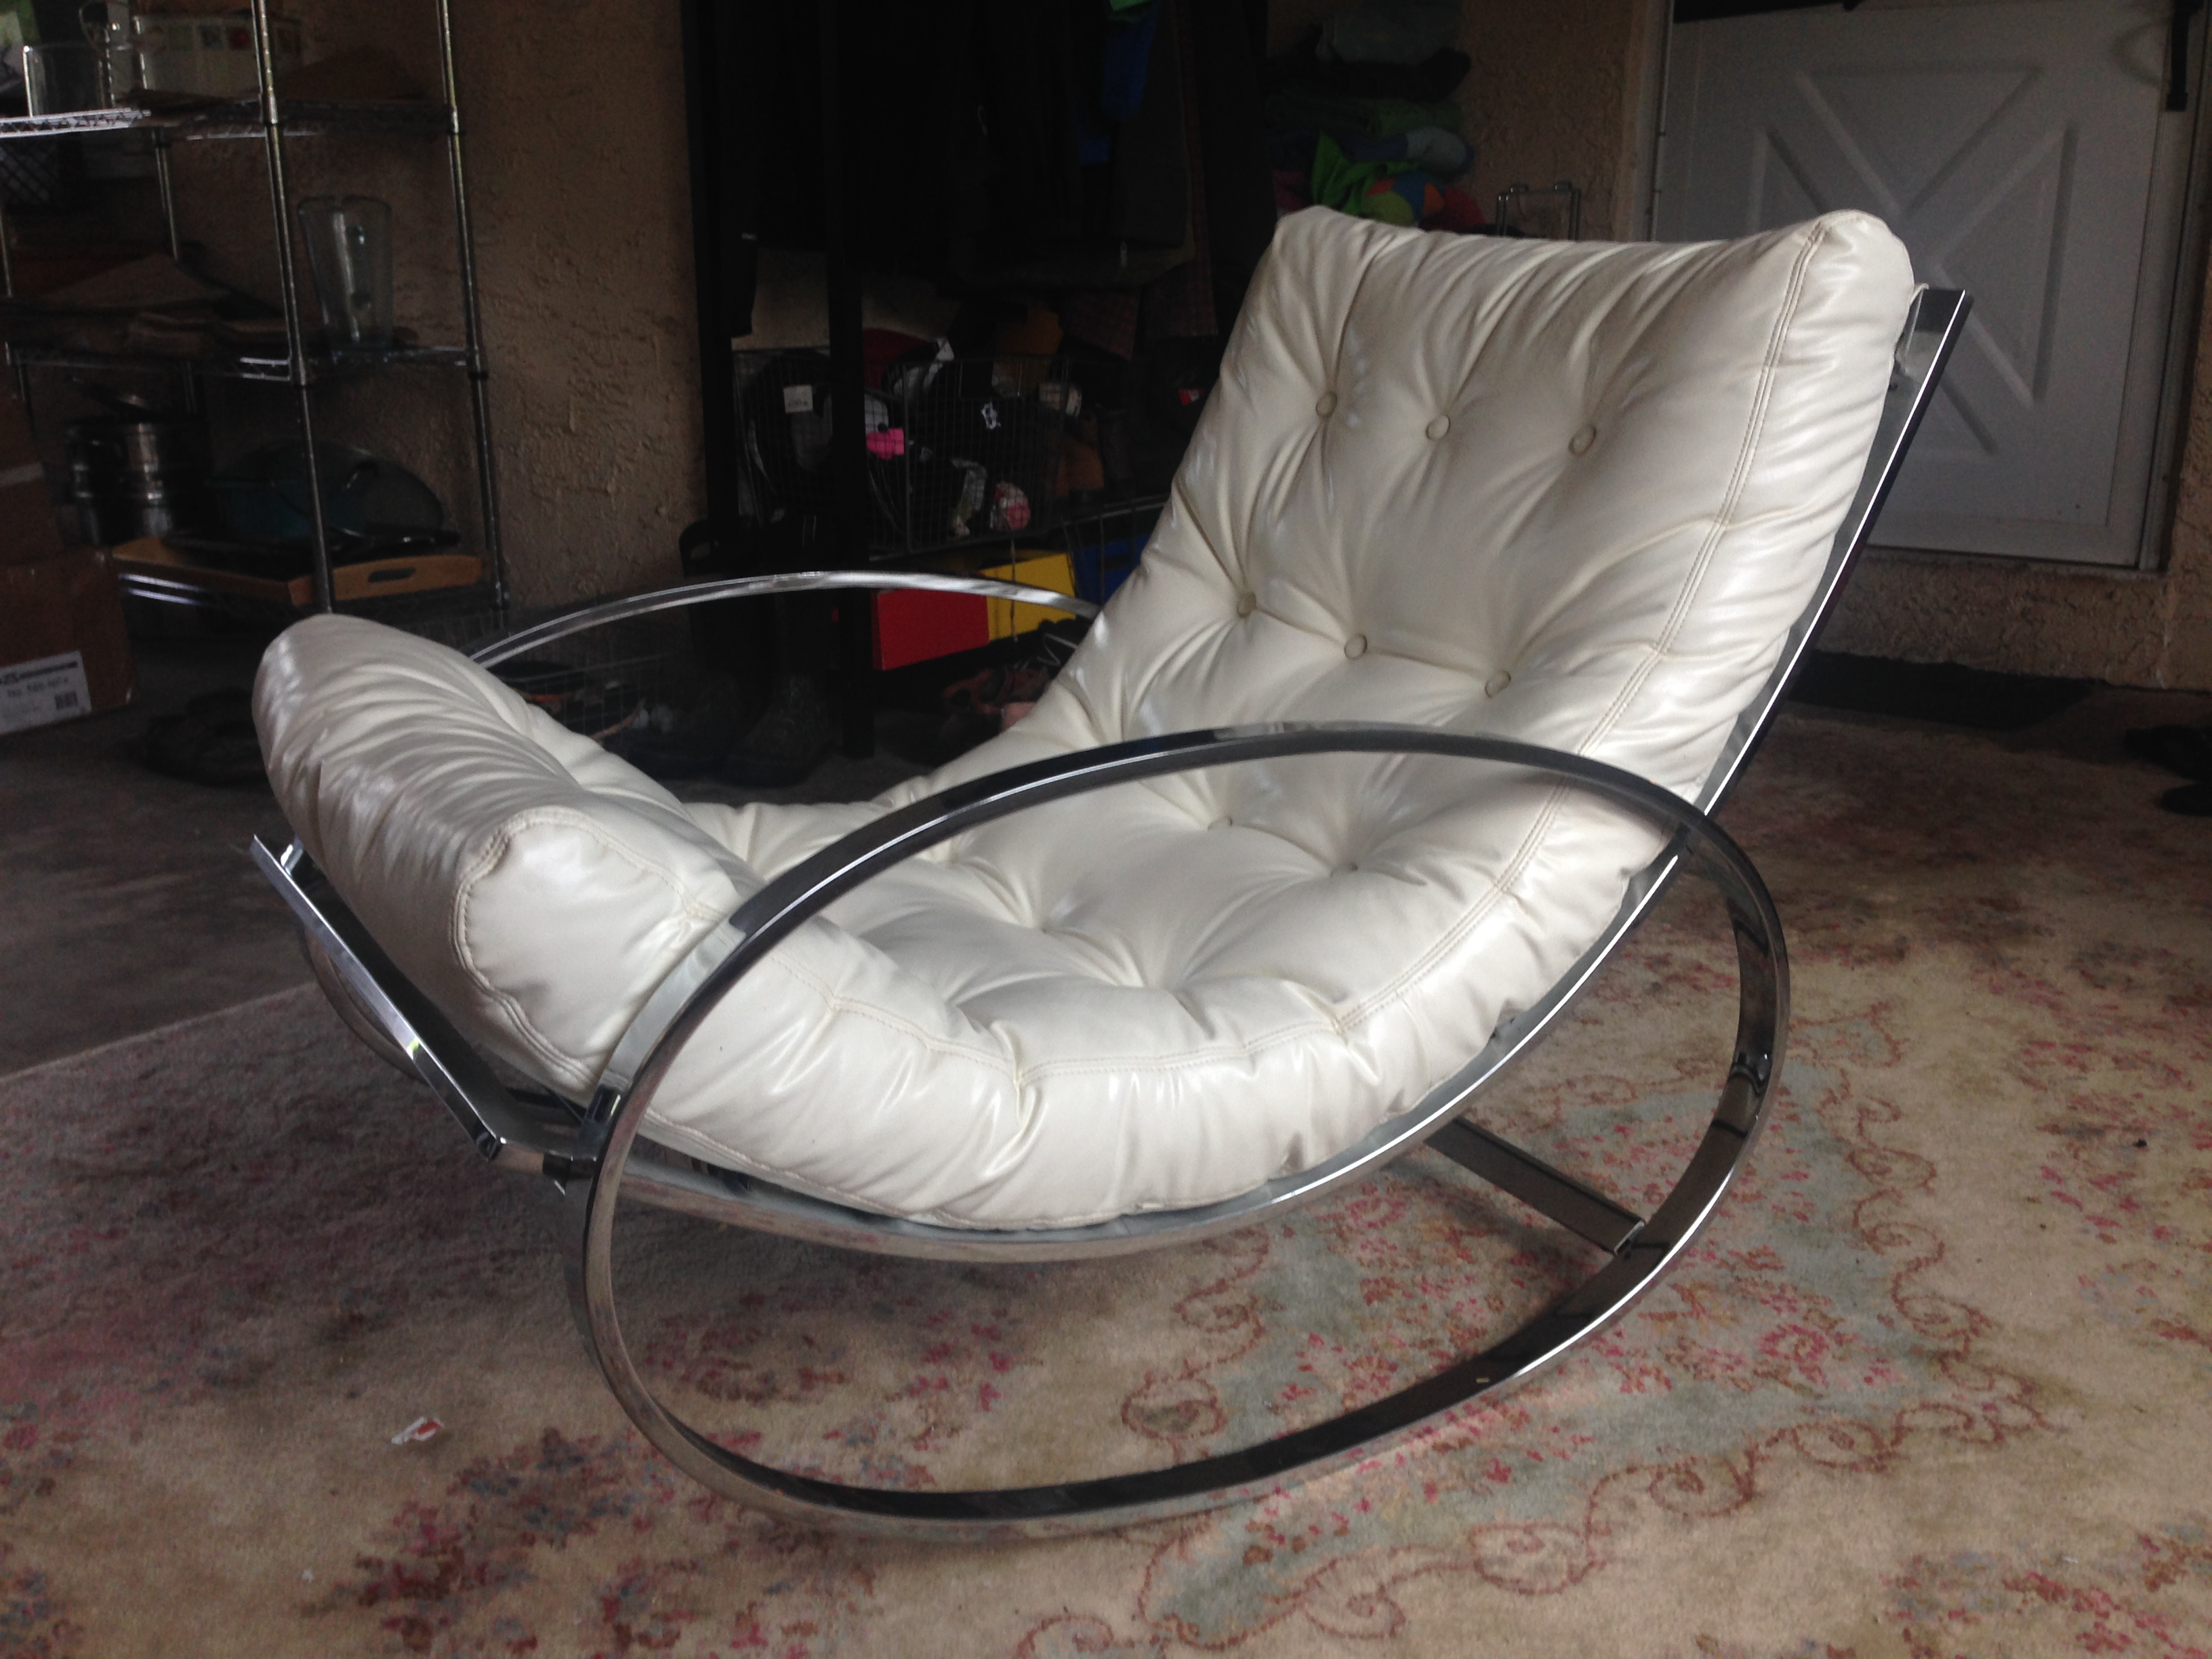 ... Tufted Rocking Chair For Sale. This Is An Authentic Early 1970u0027s Selig  Piece. Ellipsed Chrome Rocker Is In Excellent Vintage